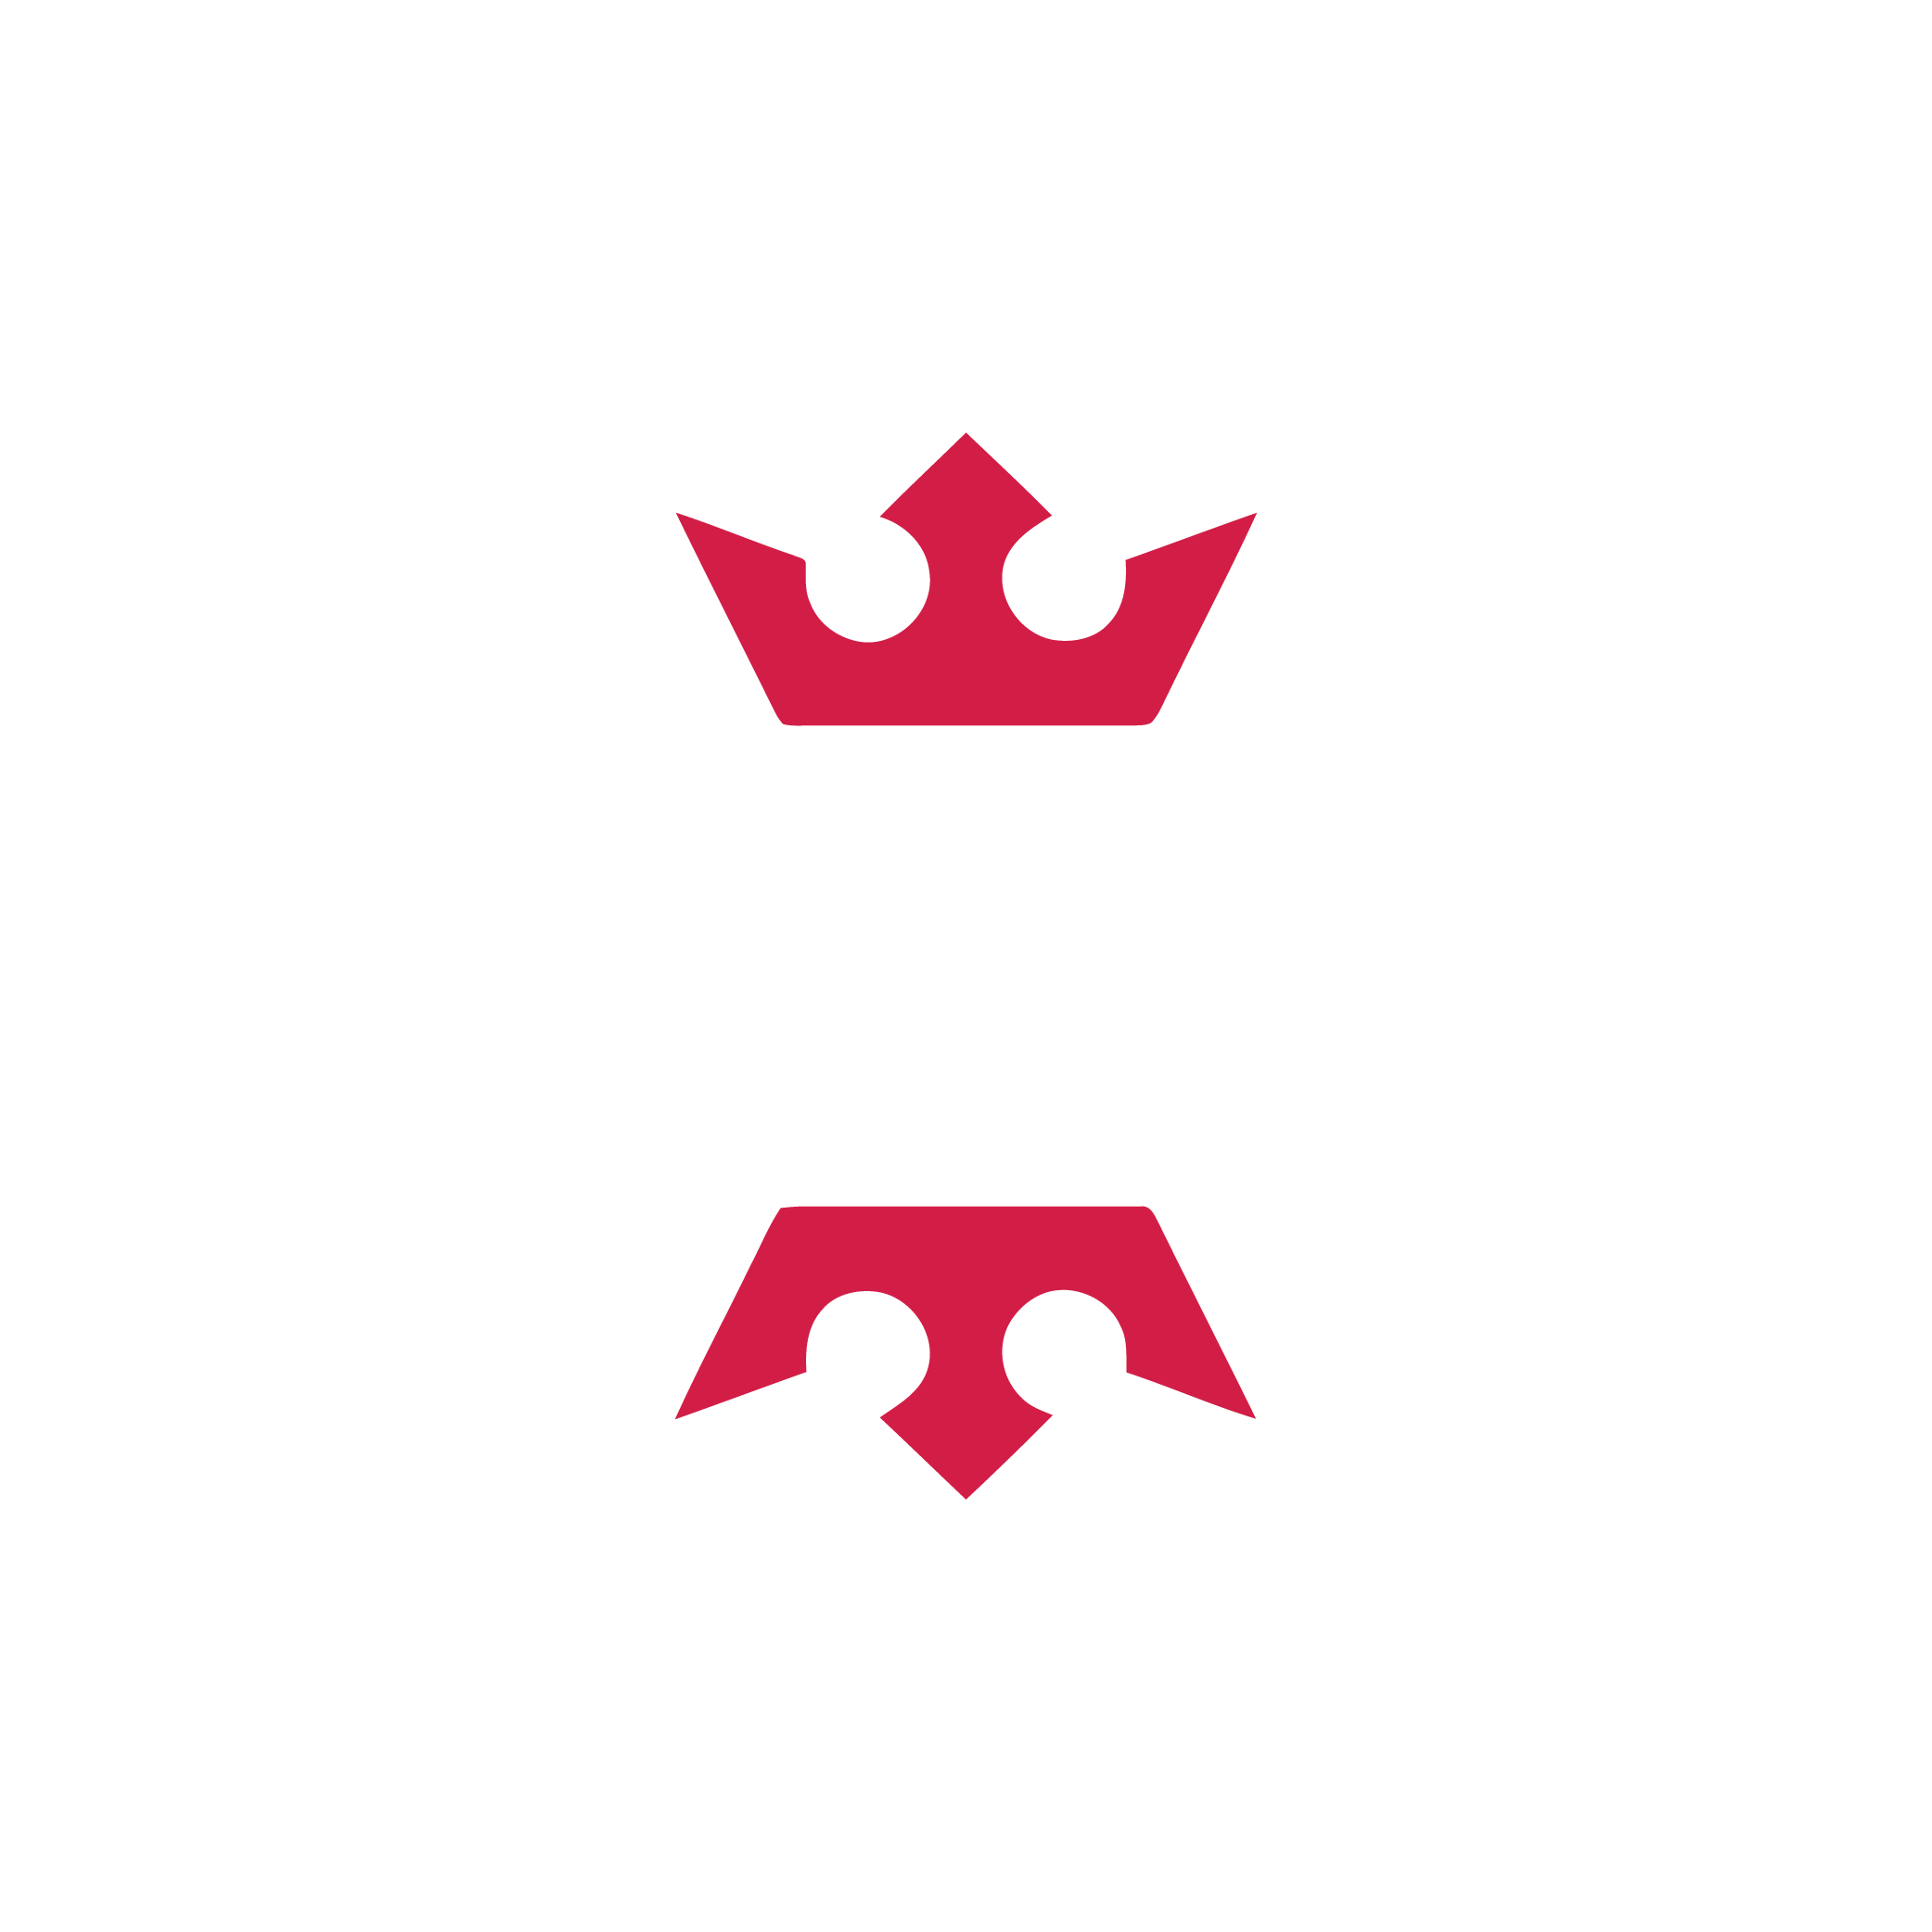 Imperial Hustle Academy